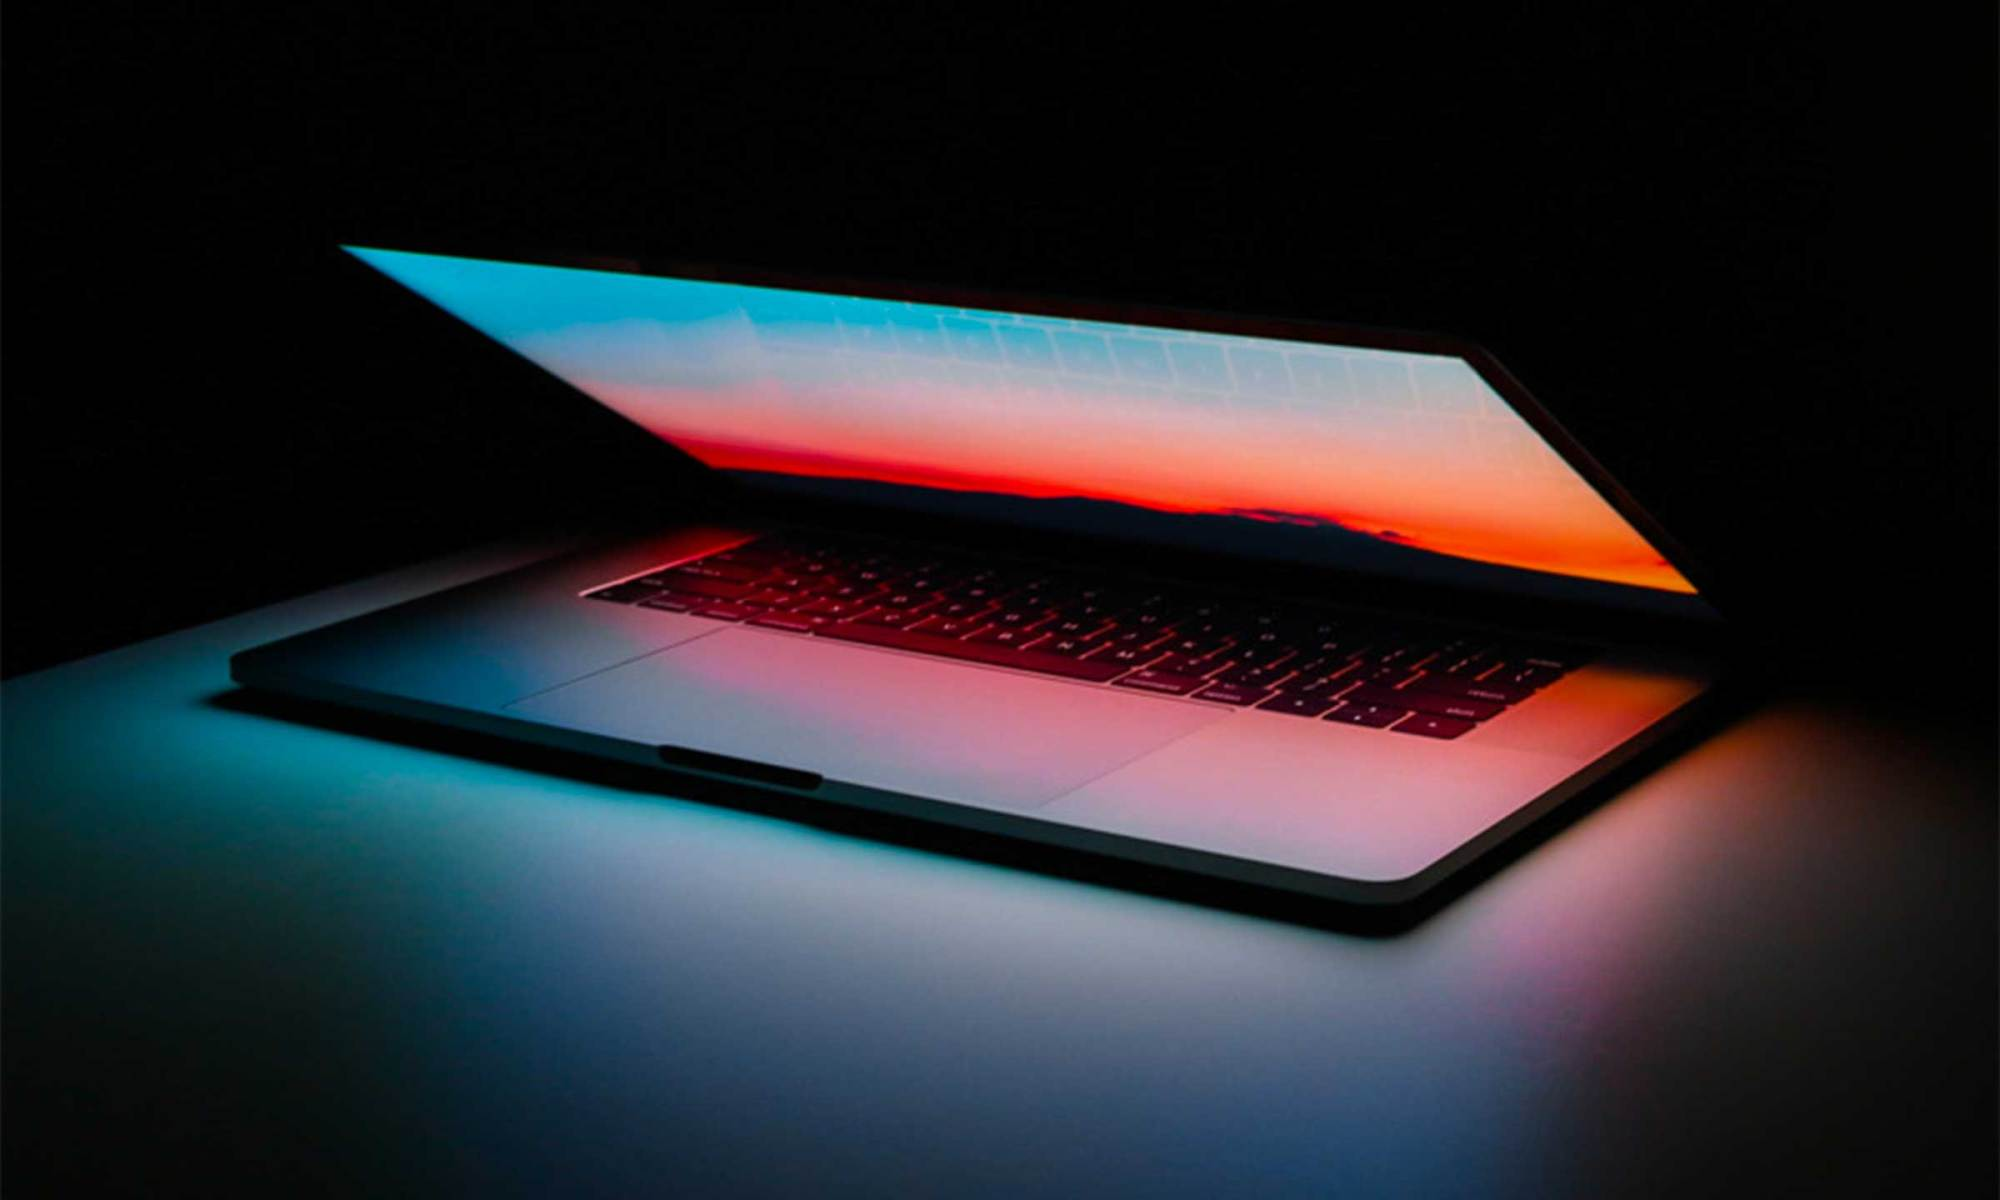 Glowing laptop to show big ideas on environmental sustainability from WGSN Web Summit 2018, Lisbon, Portugal